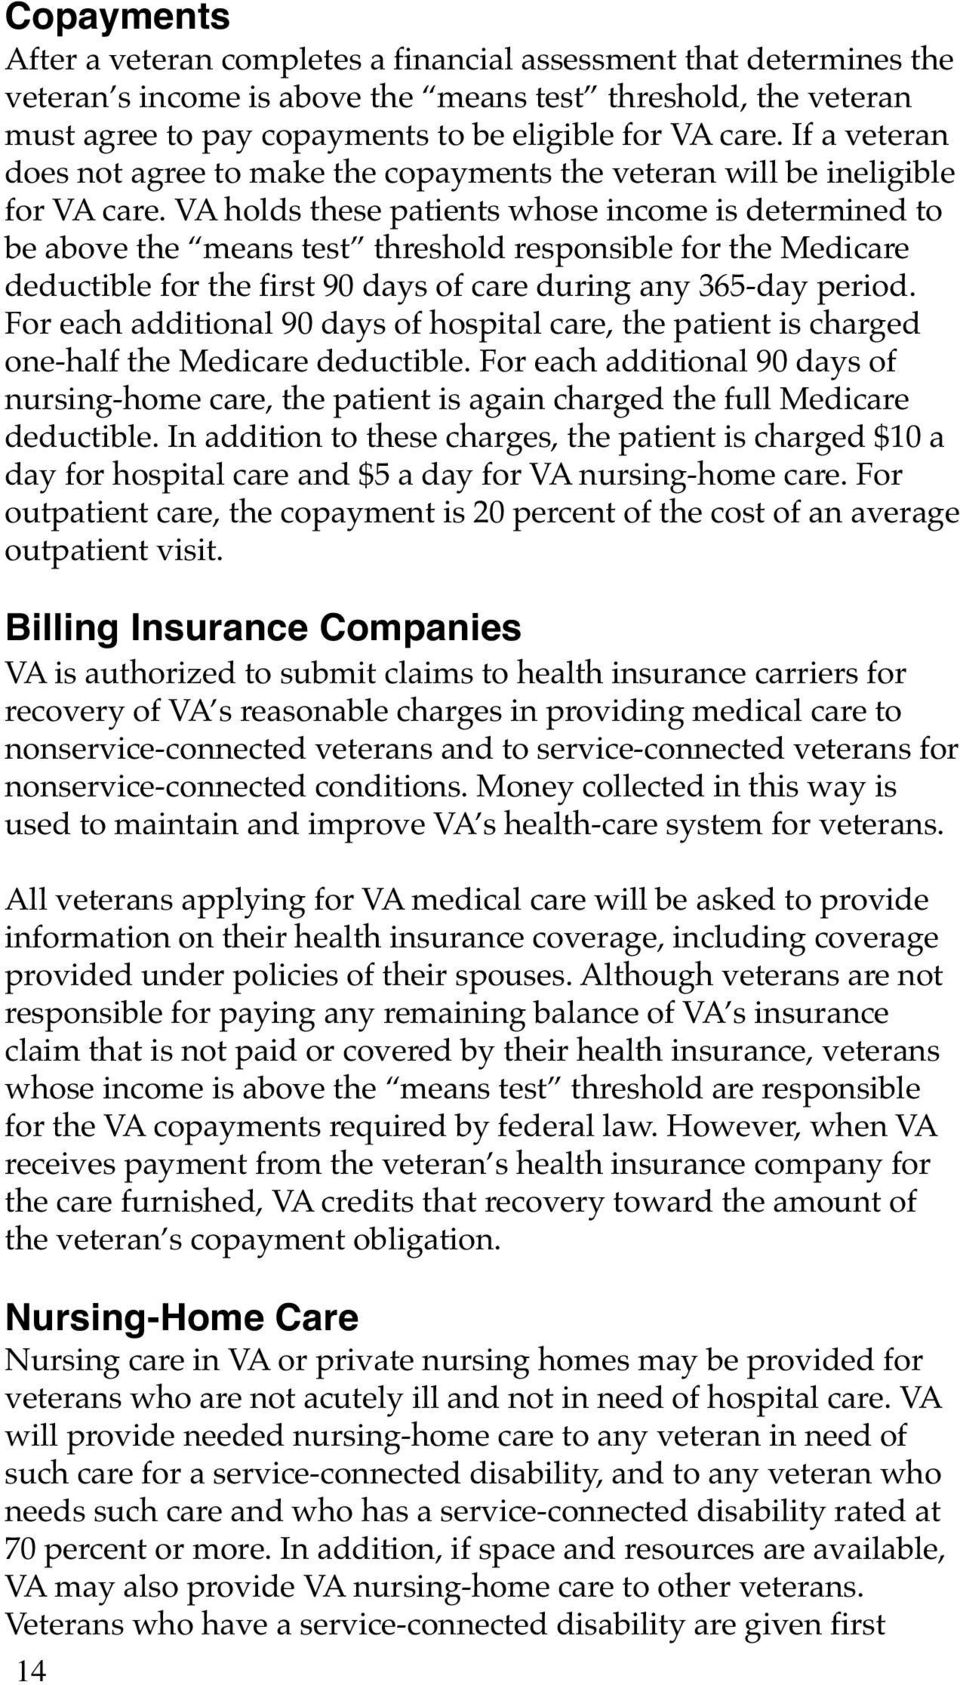 VA holds these patients whose income is determined to be above the means test threshold responsible for the Medicare deductible for the first 90 days of care during any 365-day period.